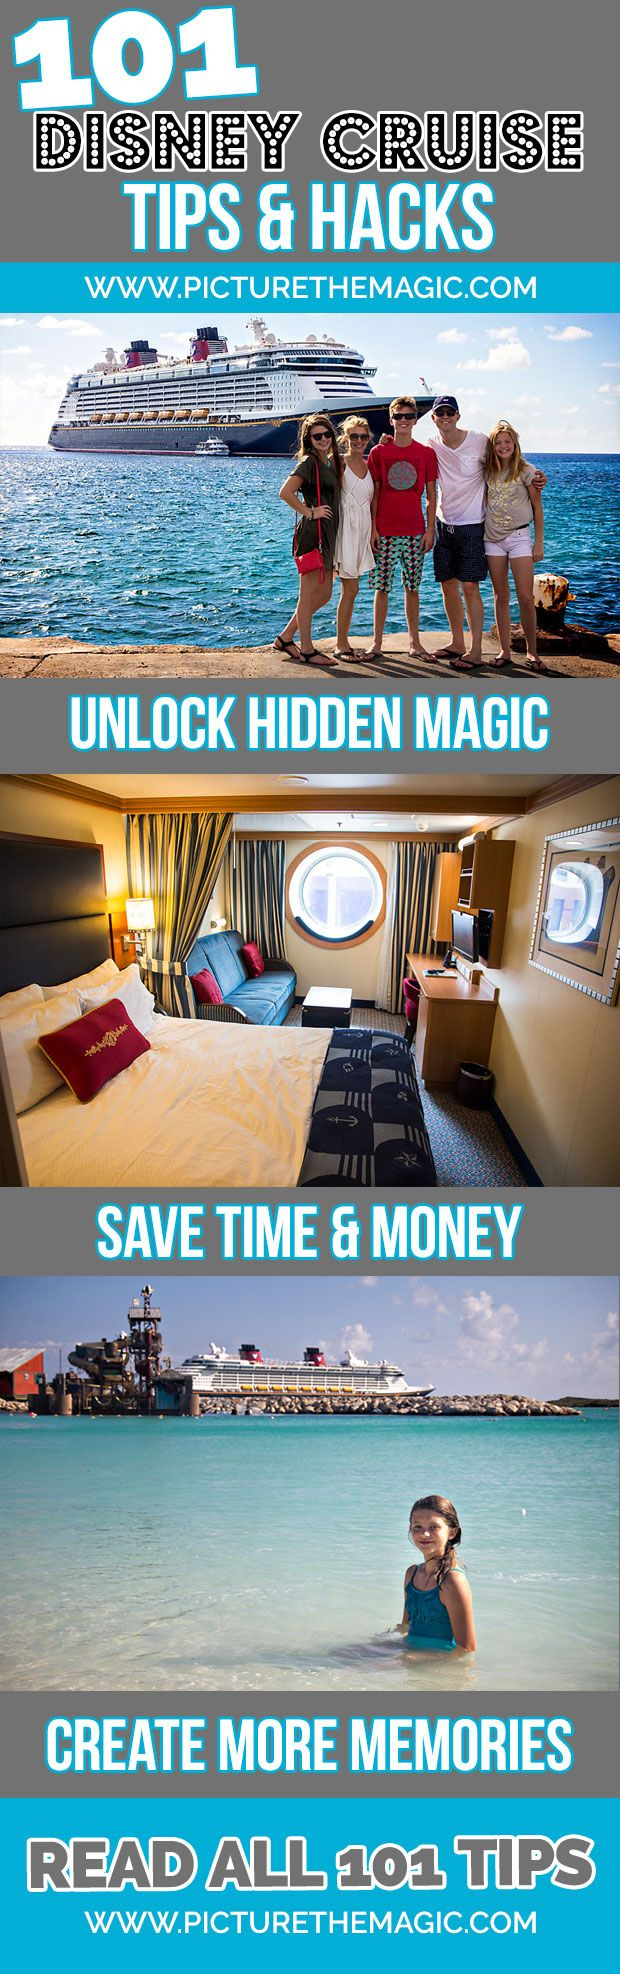 !!! 101 Disney Cruise Tips & Hacks - so much great info I'd never heard before